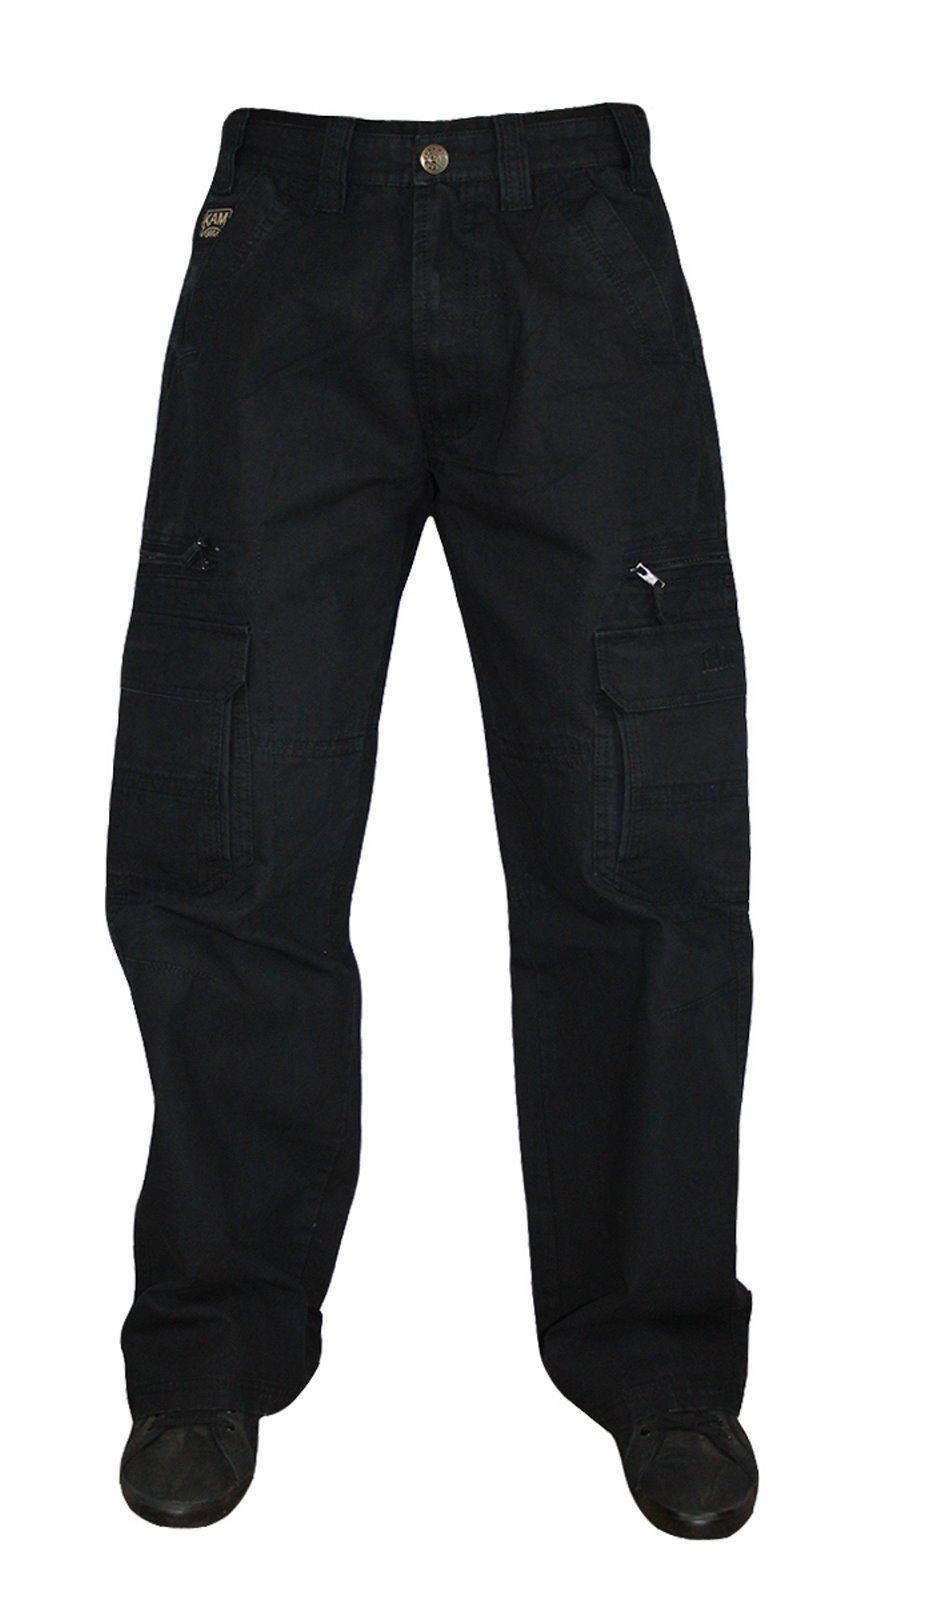 Carhartt relaxed fit pants are a classic rise that sit at the natural waist. A relaxed seat and thigh provide a little more room than traditional fit would and straight leg openings fit over work boots. Classic rise and tapered leg openings are available.